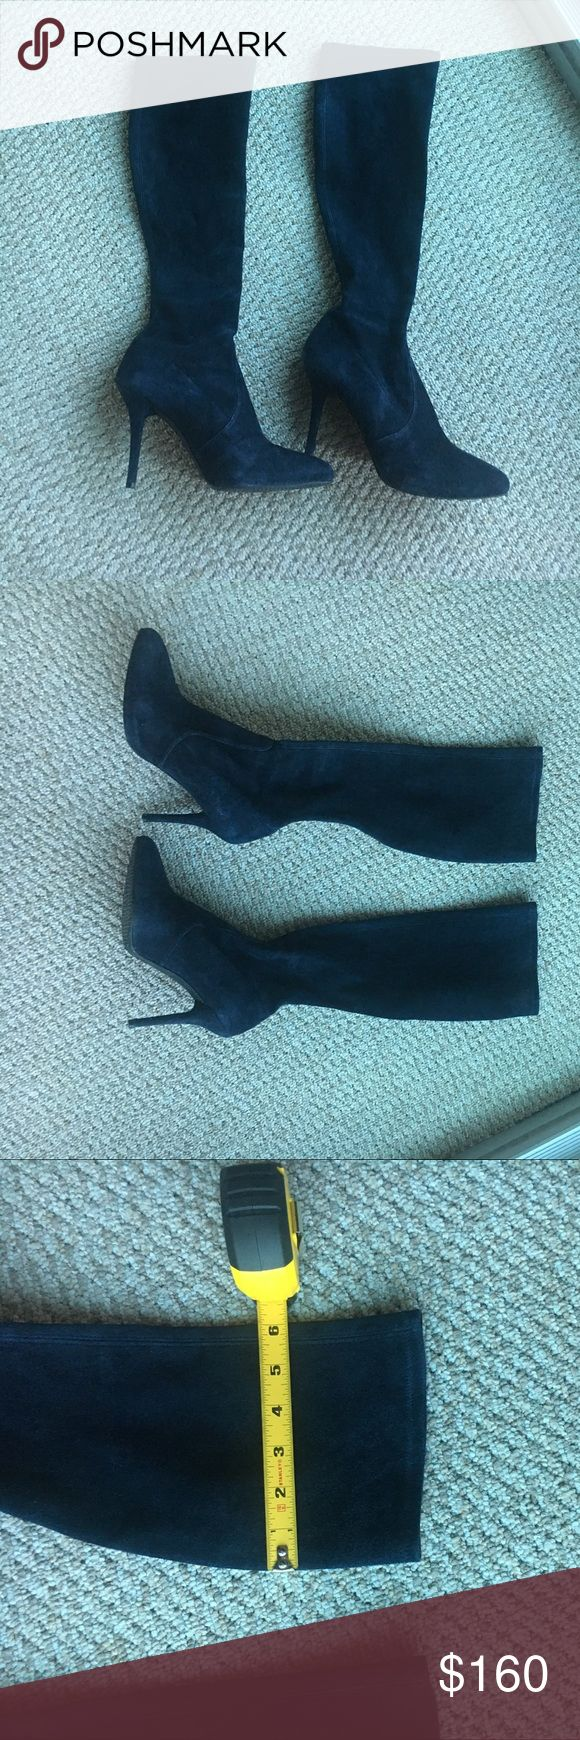 Stuart Weitzman Knee High Navy Suede Boots -8.5 Stuart Weitzman Knee High Navy Suede Boots. In very good condition, gorgeous color, super soft suede, that does stretch a bit. Just ended up being a tad big for me.   I am open to offers !   Please ask if you have any questions :) Stuart Weitzman Shoes